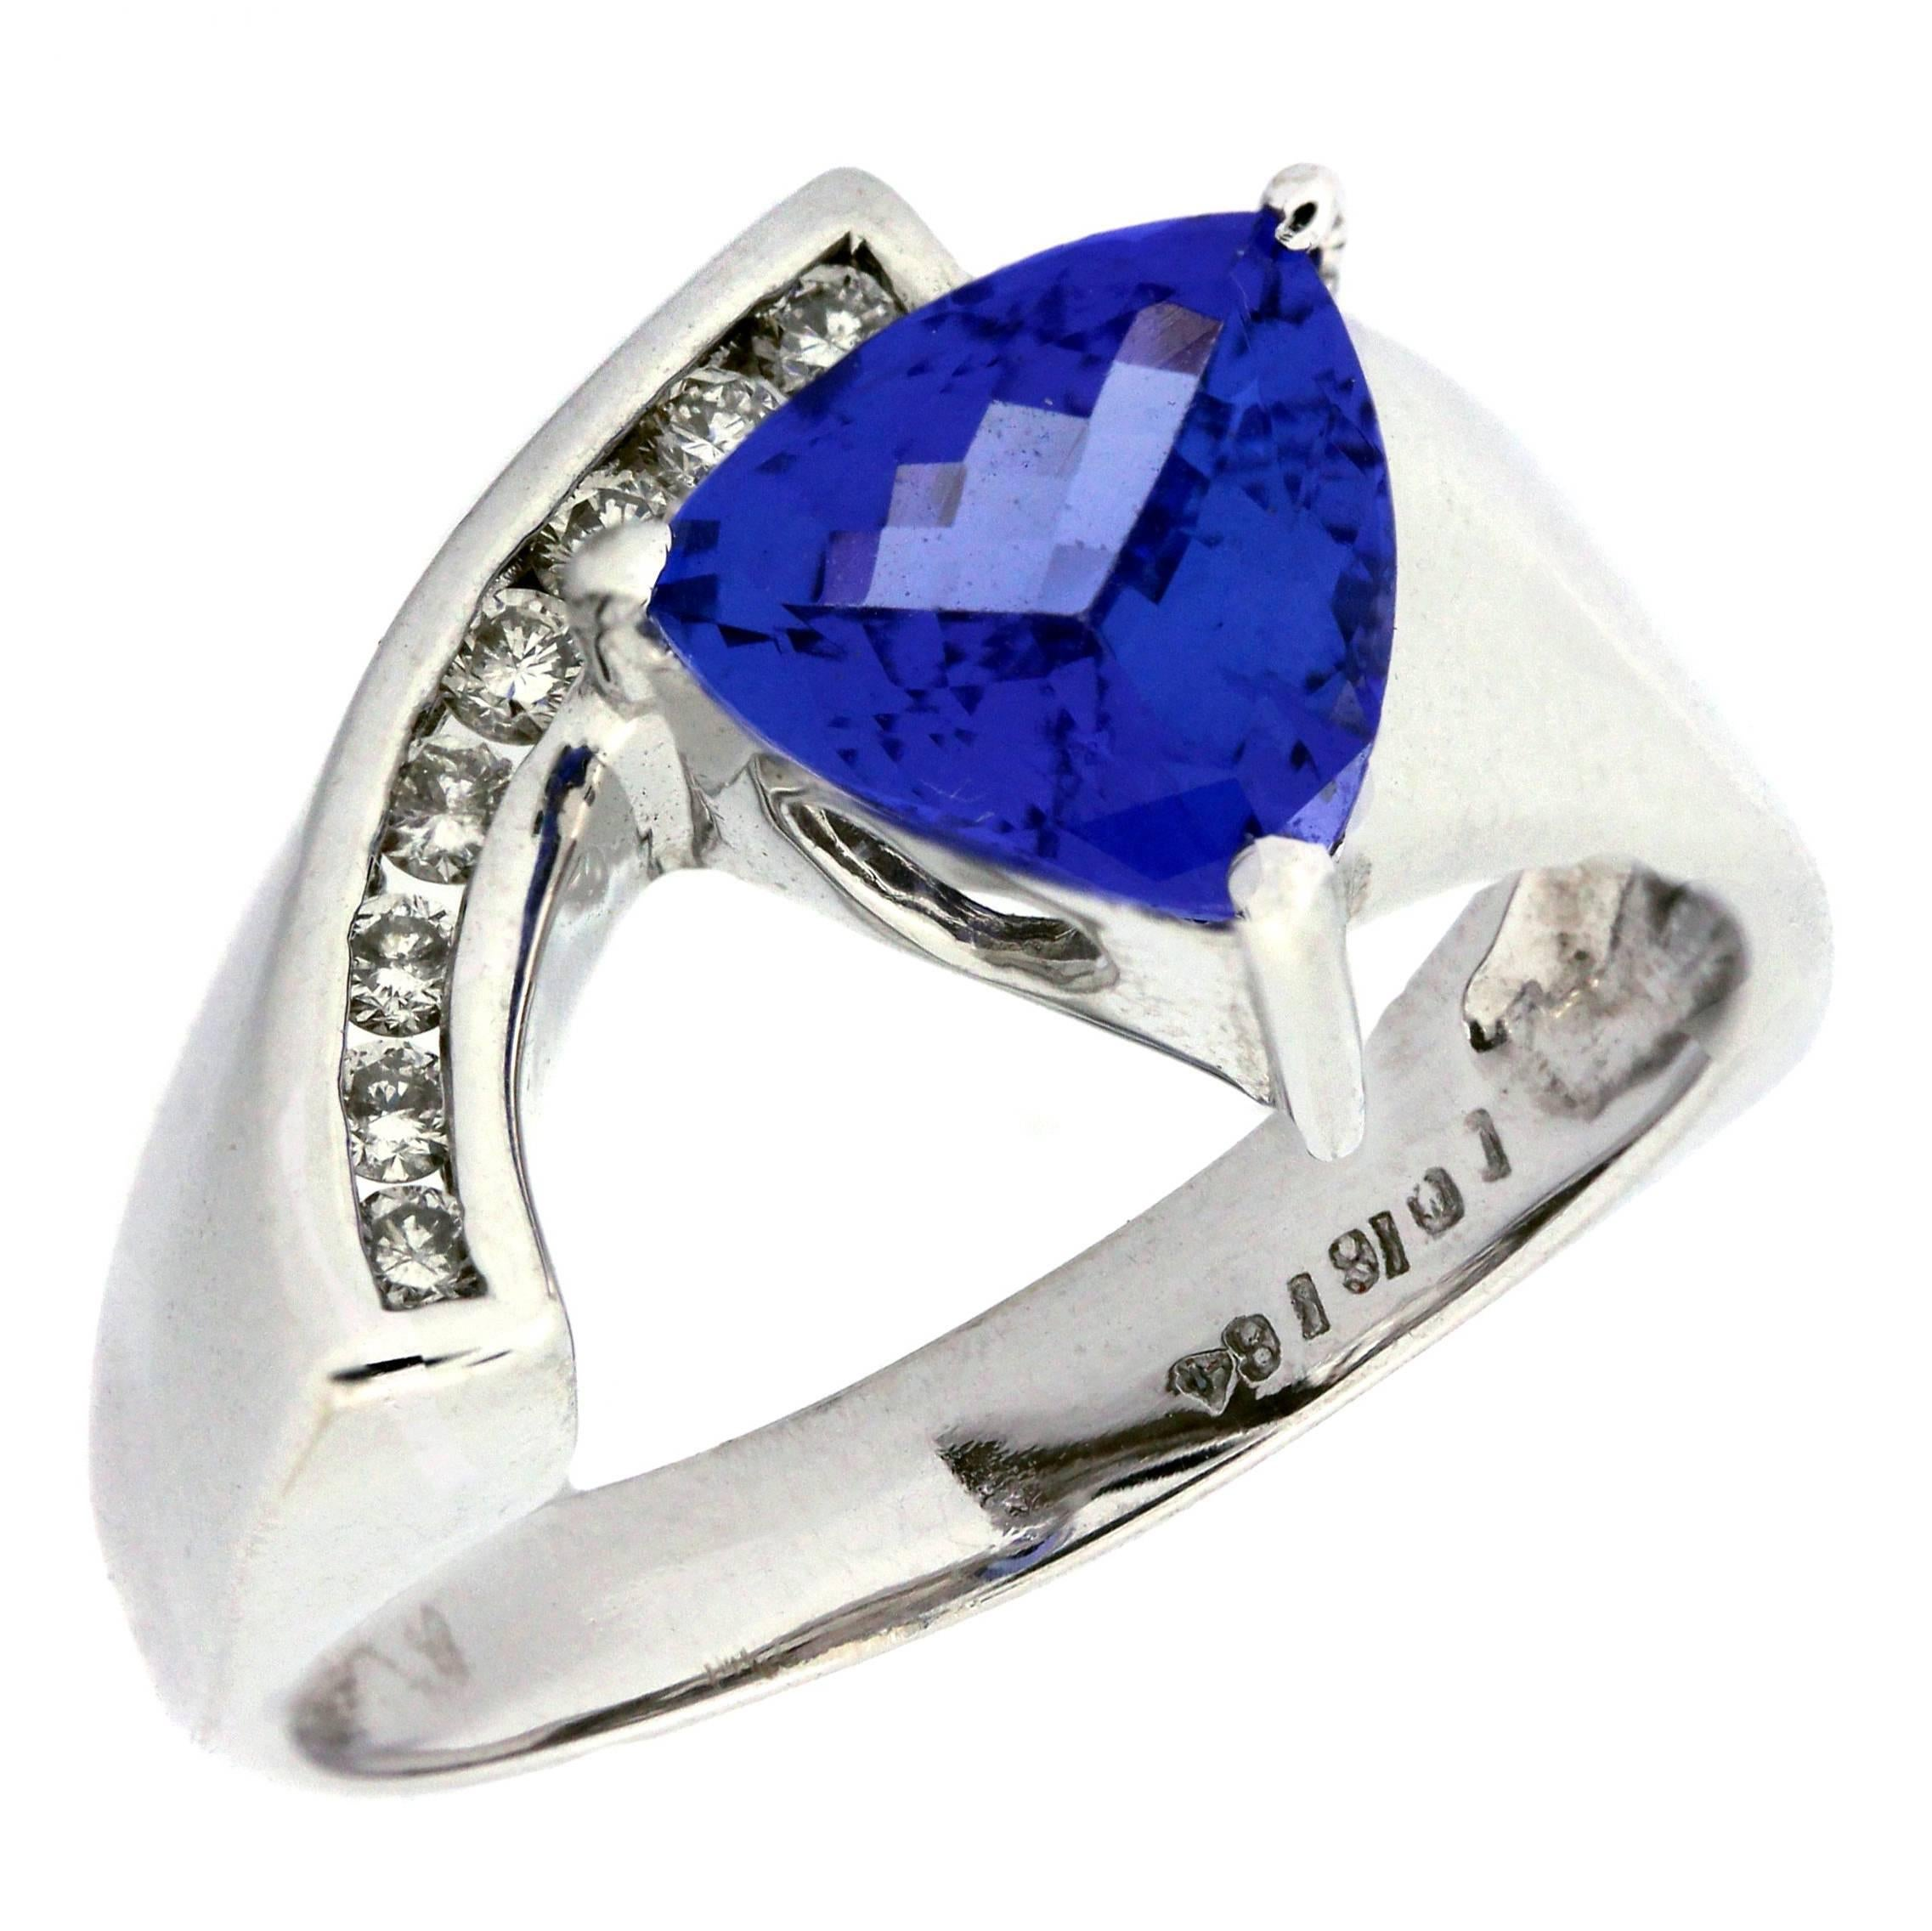 gold diamonds karat ring trillion summit triangular cut project tanzanite eighteen